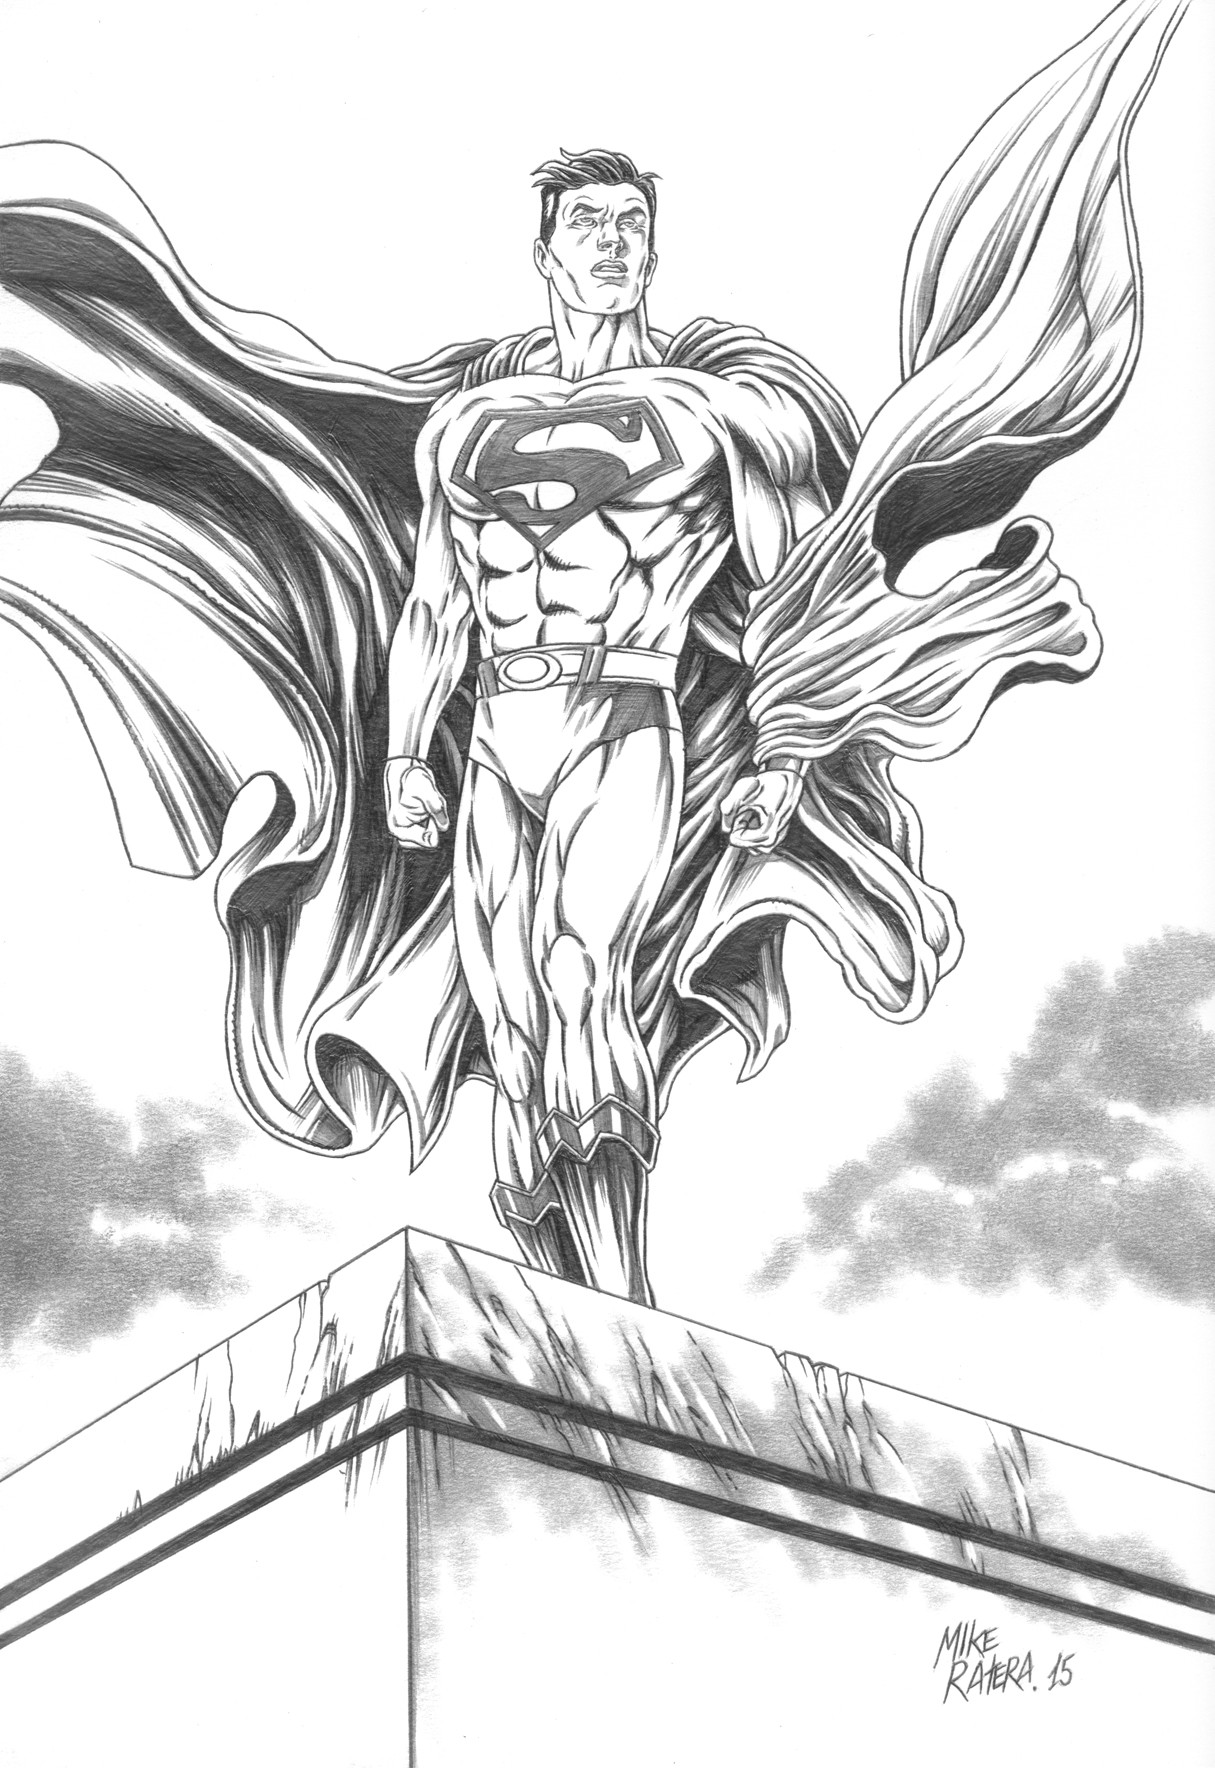 Mike ratera superman bw